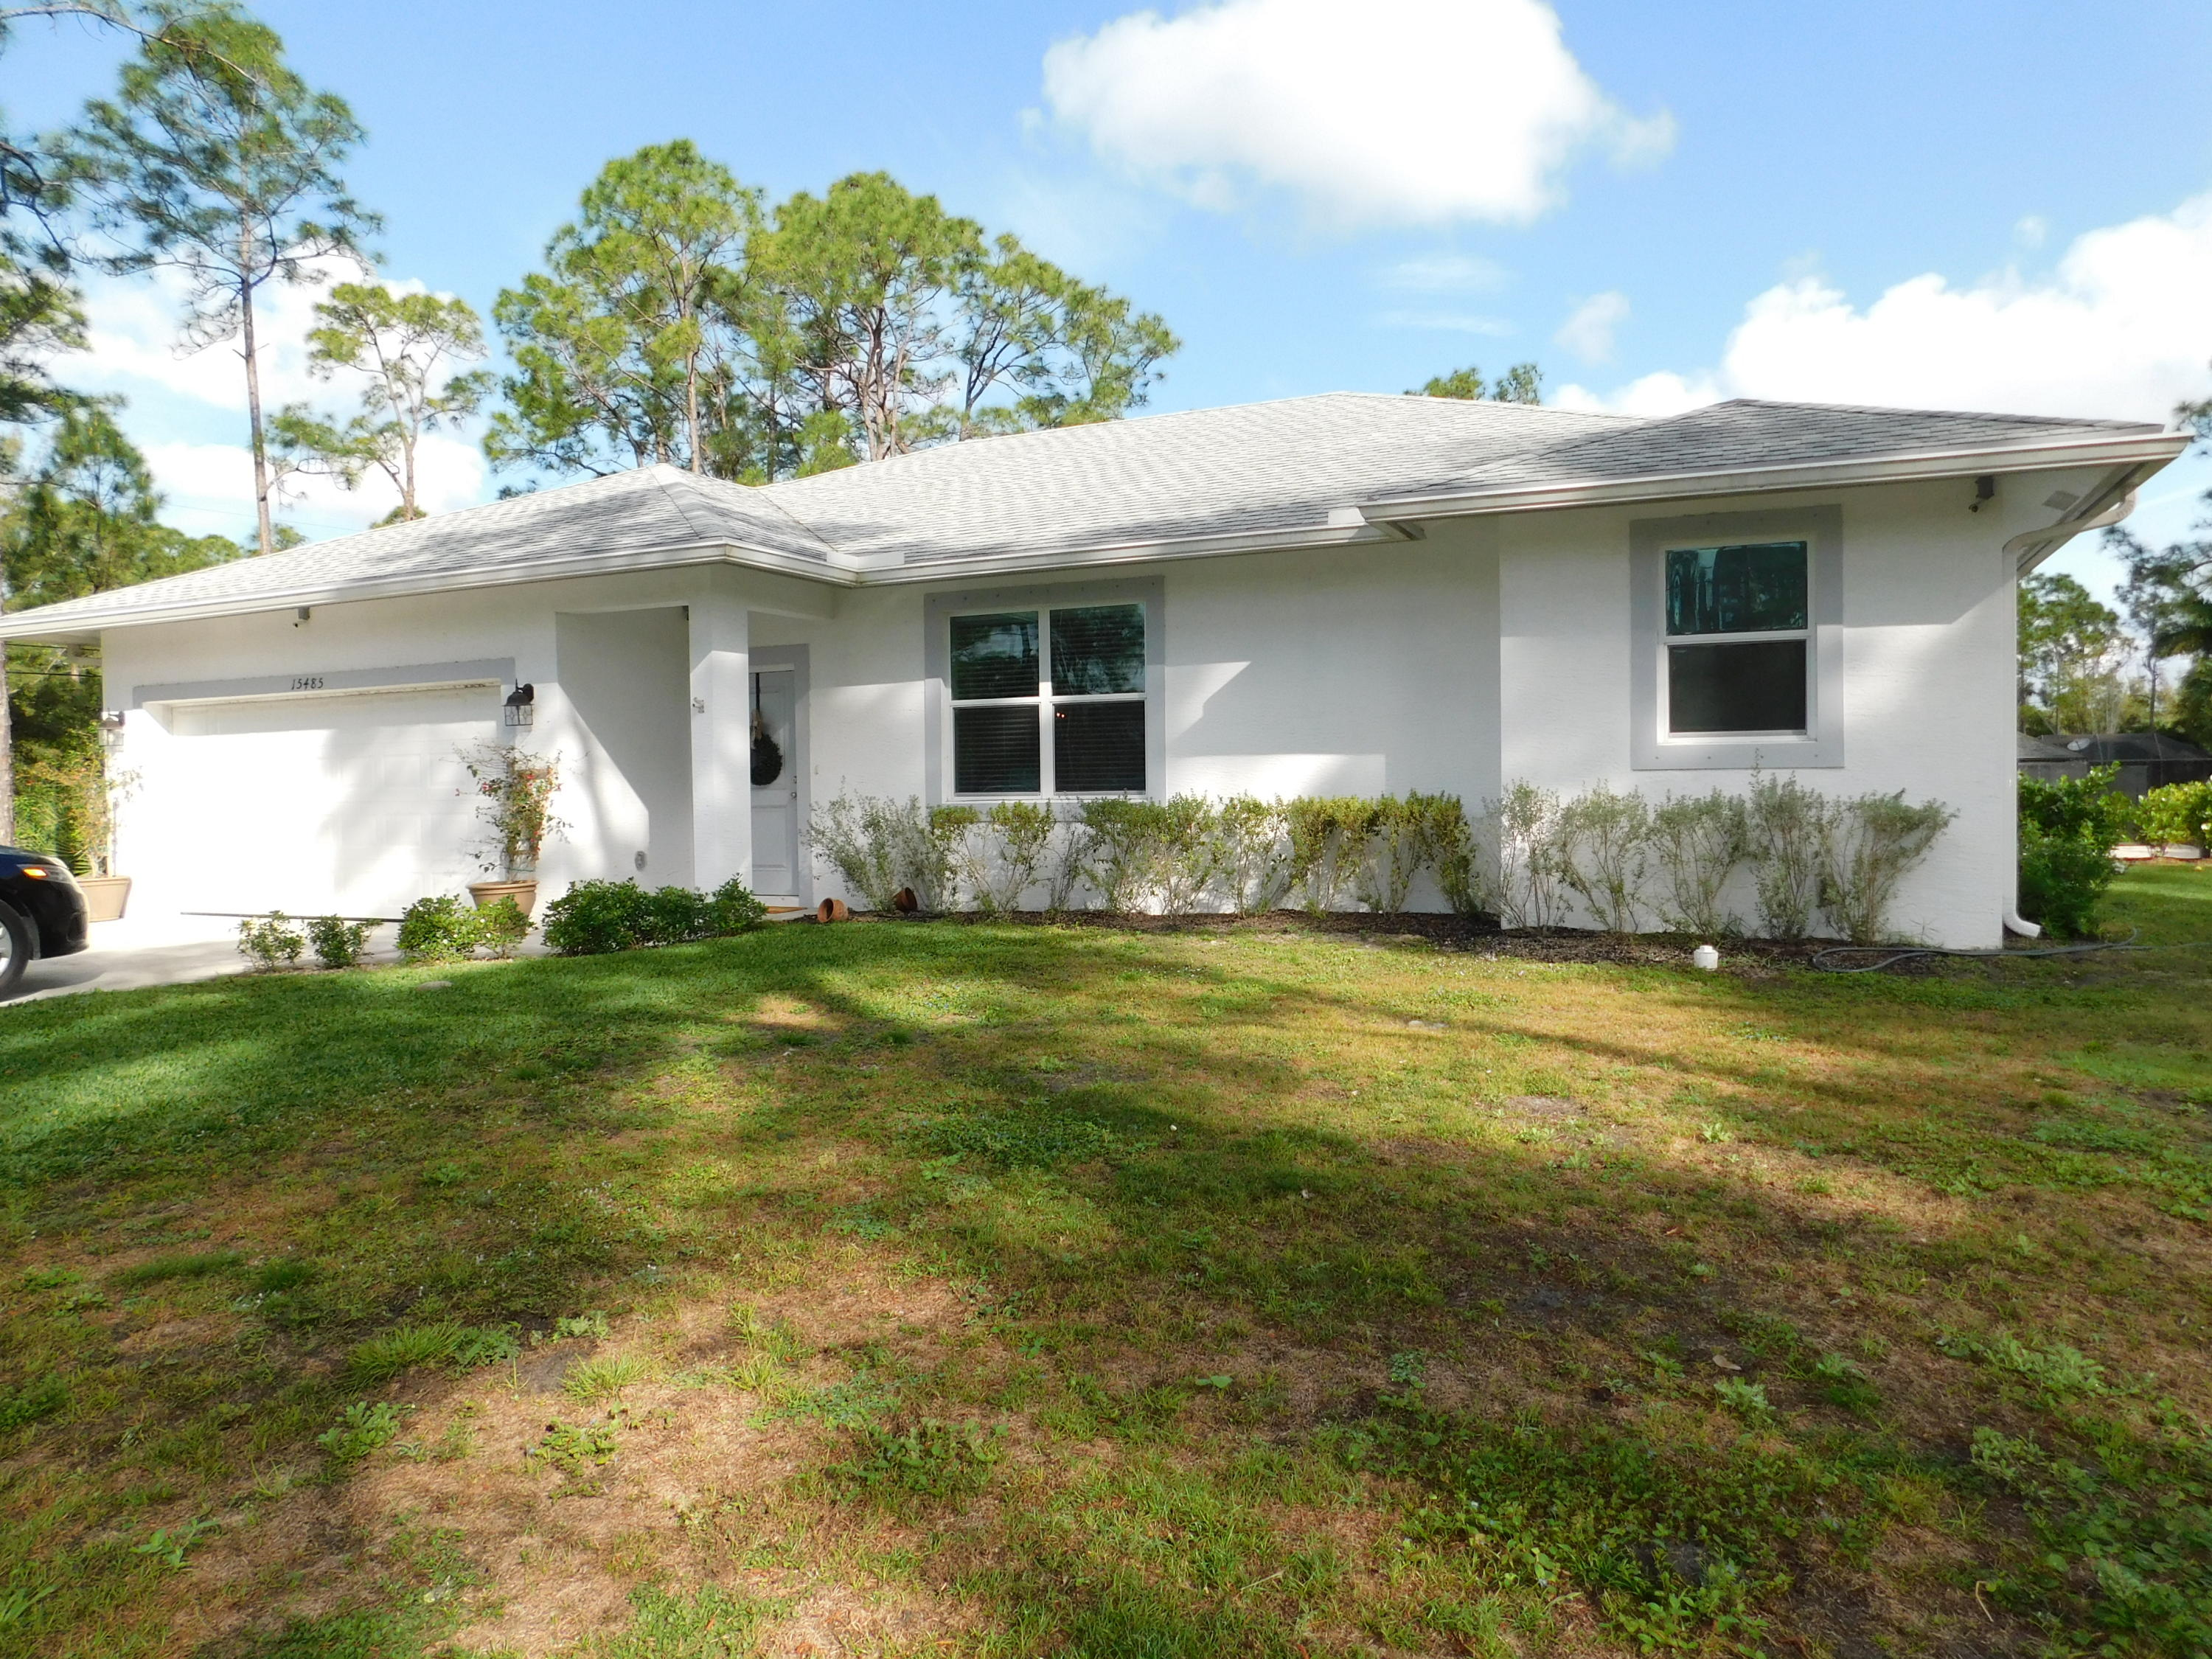 15485 68th Court N, Loxahatchee in Palm Beach County, FL 33470 Home for Sale